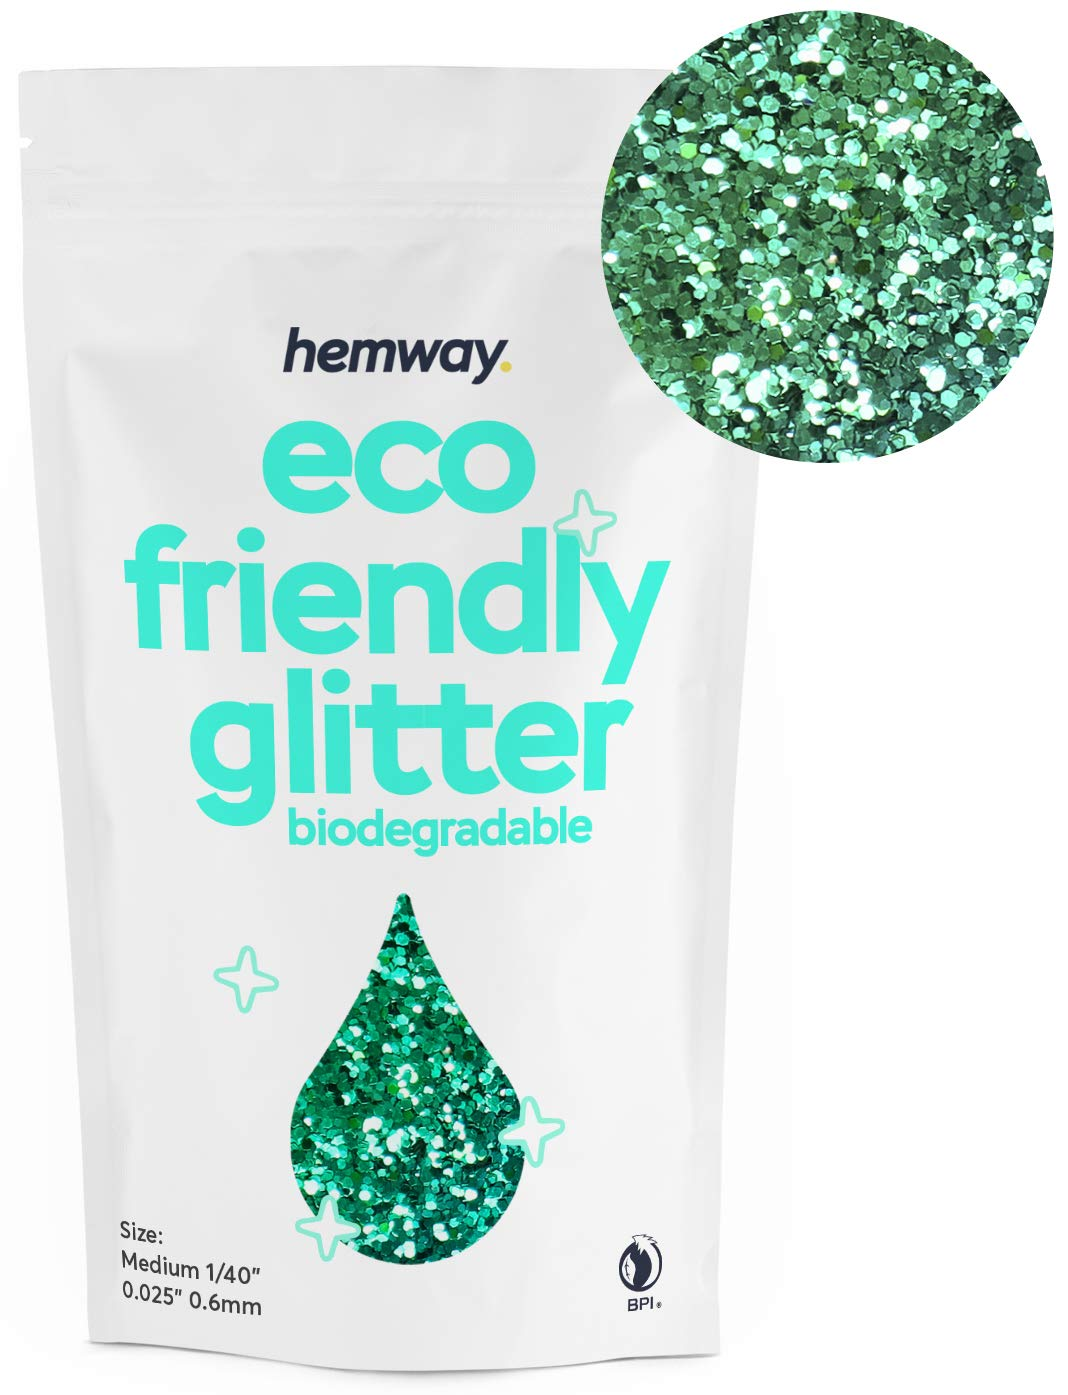 Hemway Eco Friendly Biodegradable Glitter 100g / 3.5oz Bio Cosmetic Safe Sparkle Vegan for Face, Eyeshadow, Body, Hair, Nail and Festival Makeup, Craft - 1/40